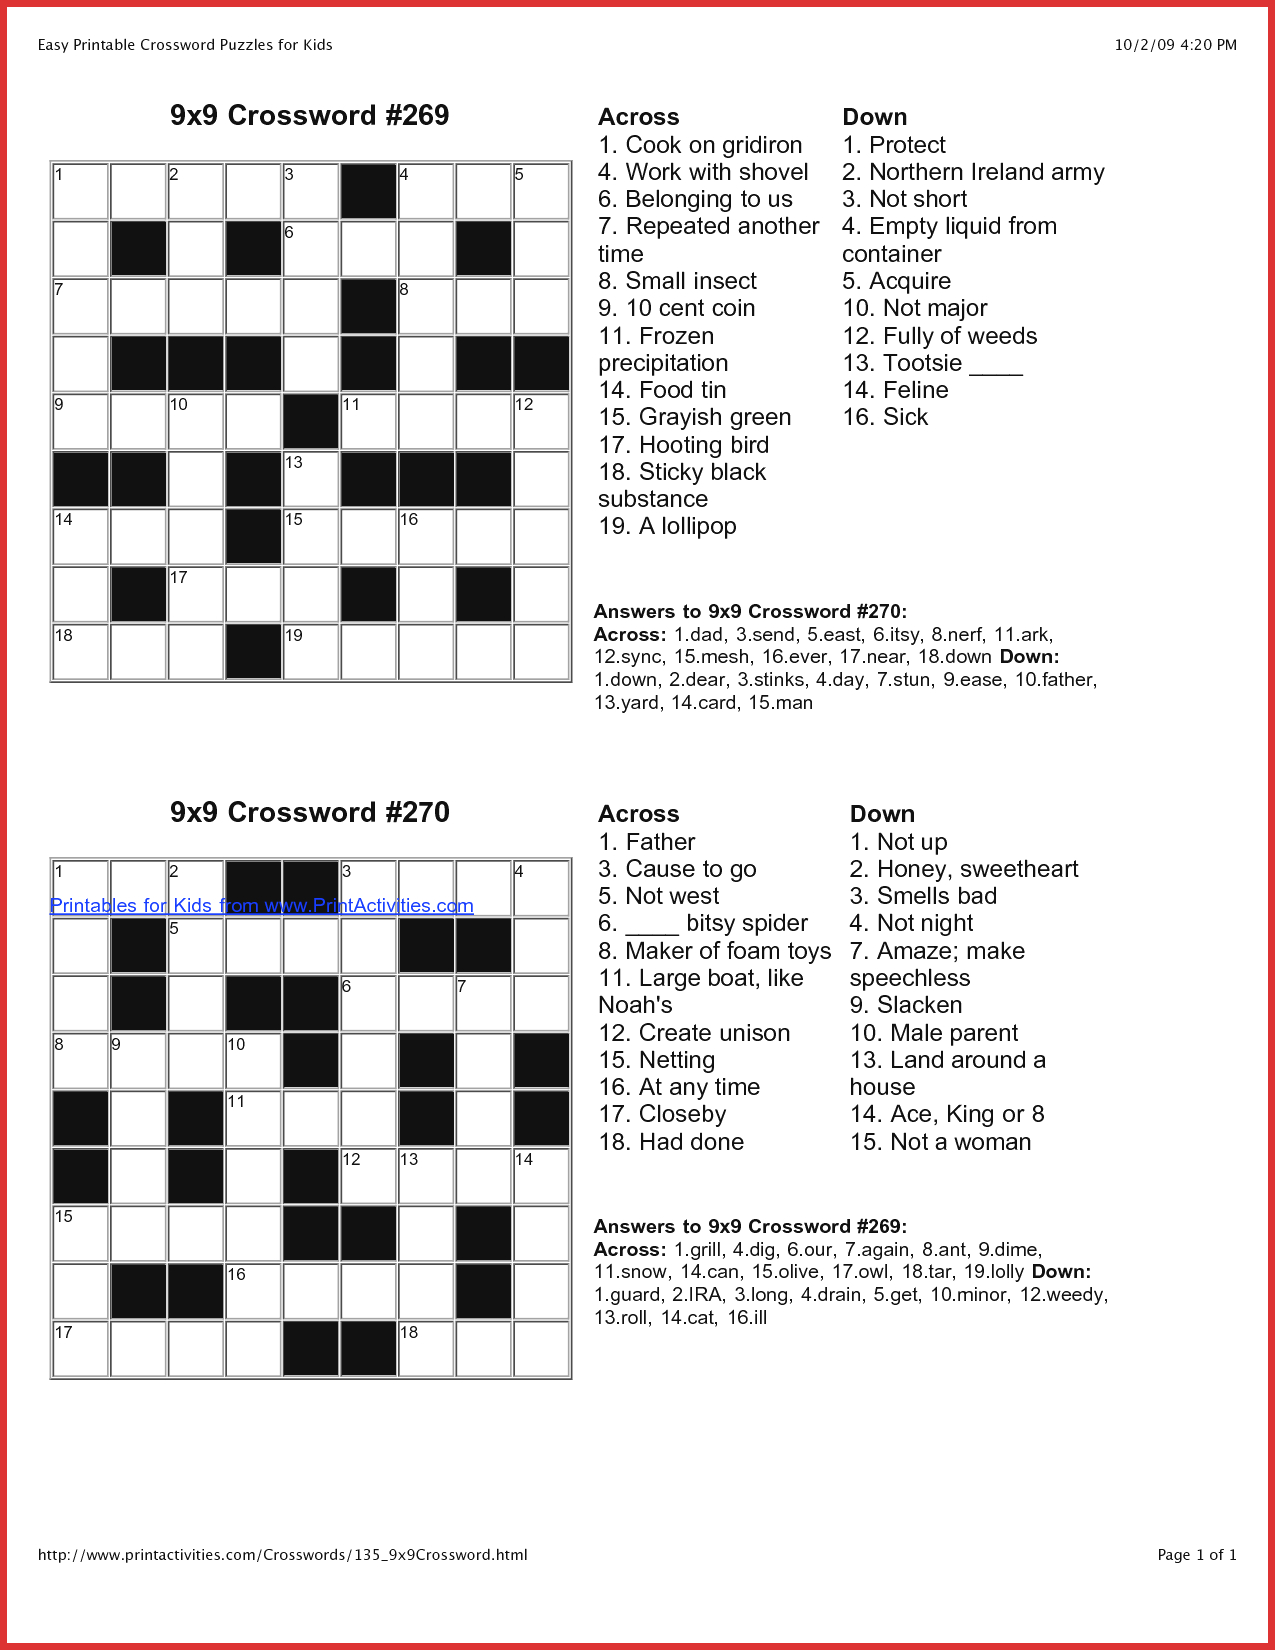 Coloring ~ Coloring Easy Printable Crossword Puzzles Large Print - Free Printable Universal Crossword Puzzles